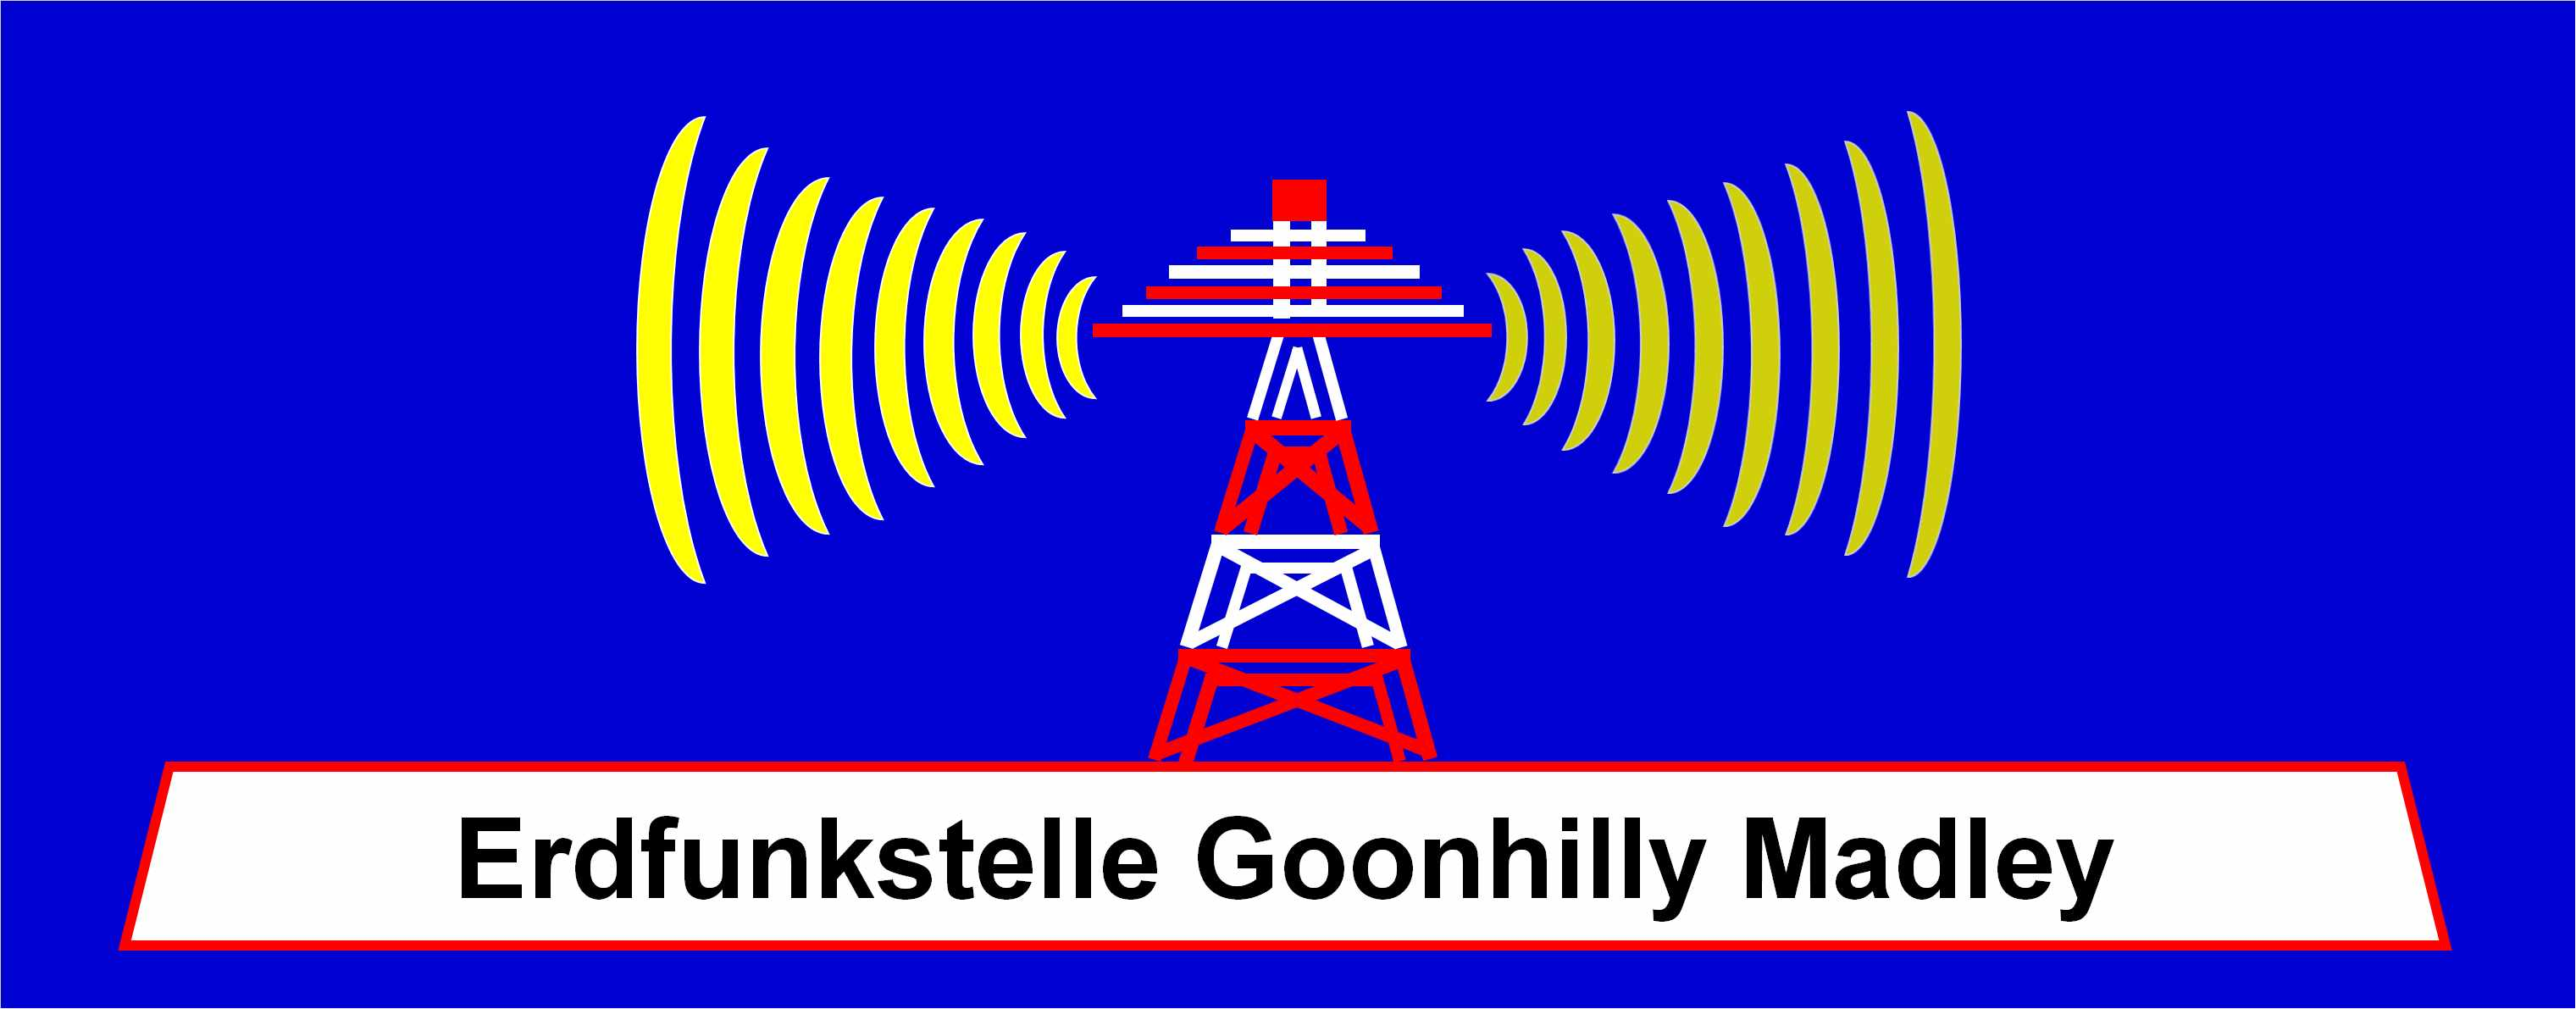 Erdfunkstelle Goonhilly Madley